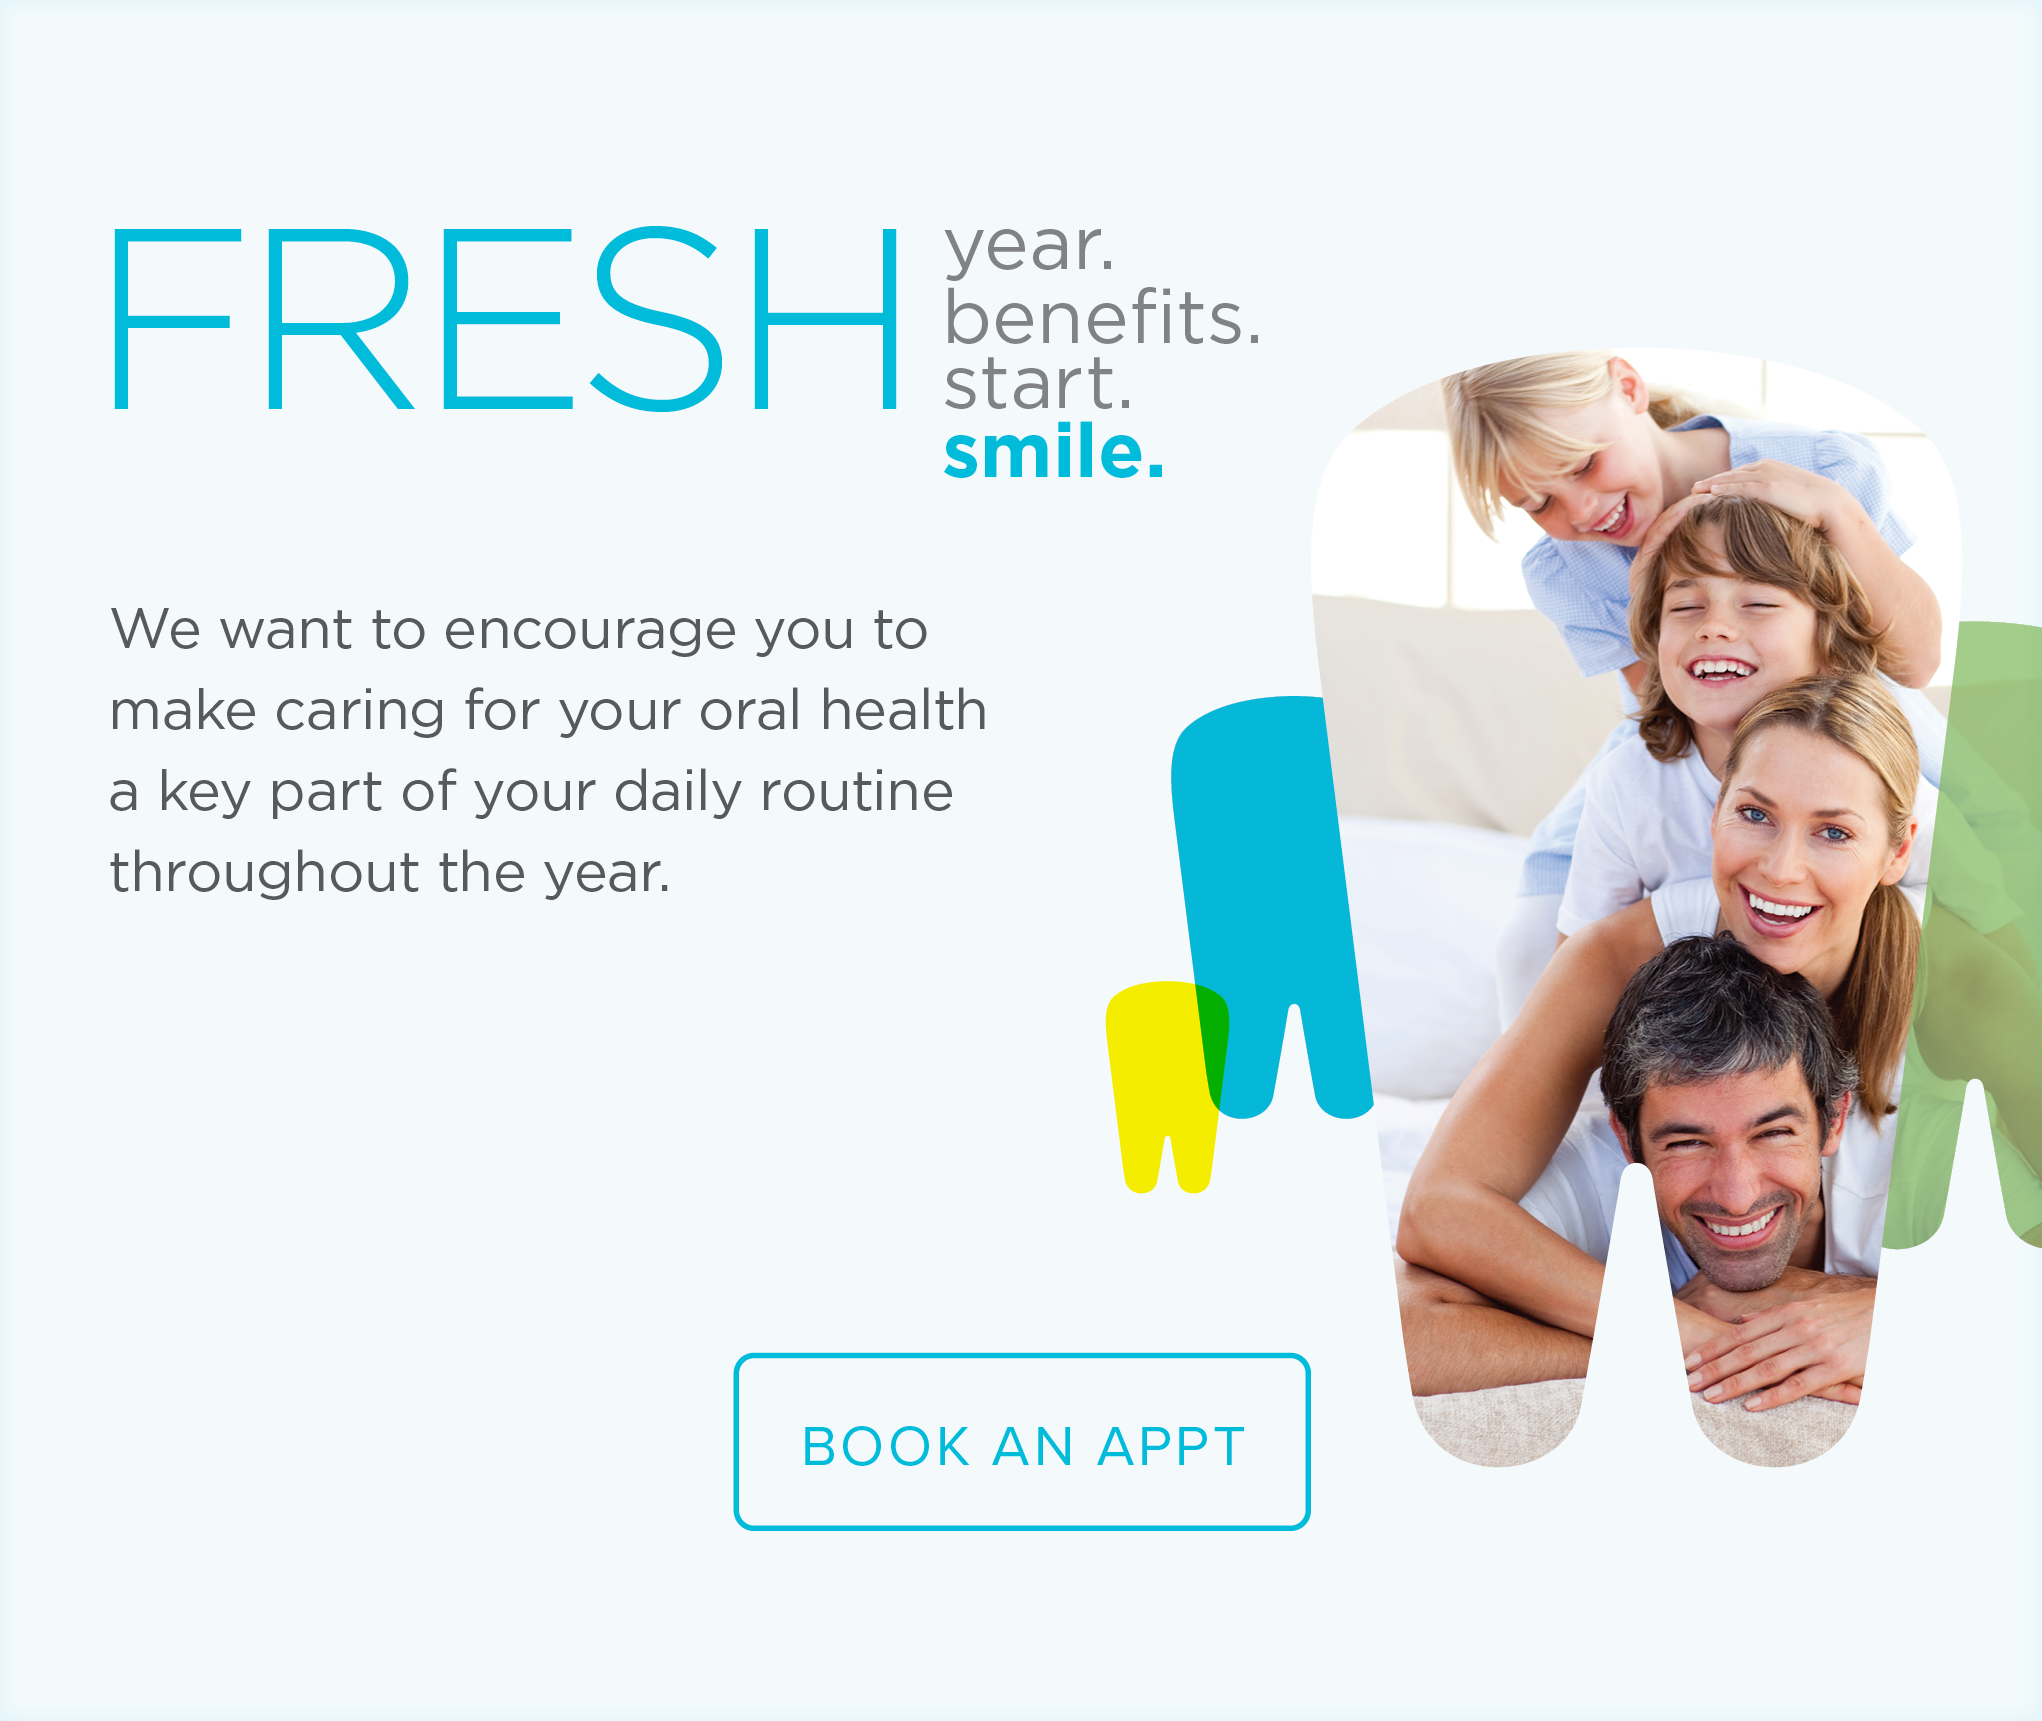 Albuquerque Modern Dentistry - Make the Most of Your Benefits